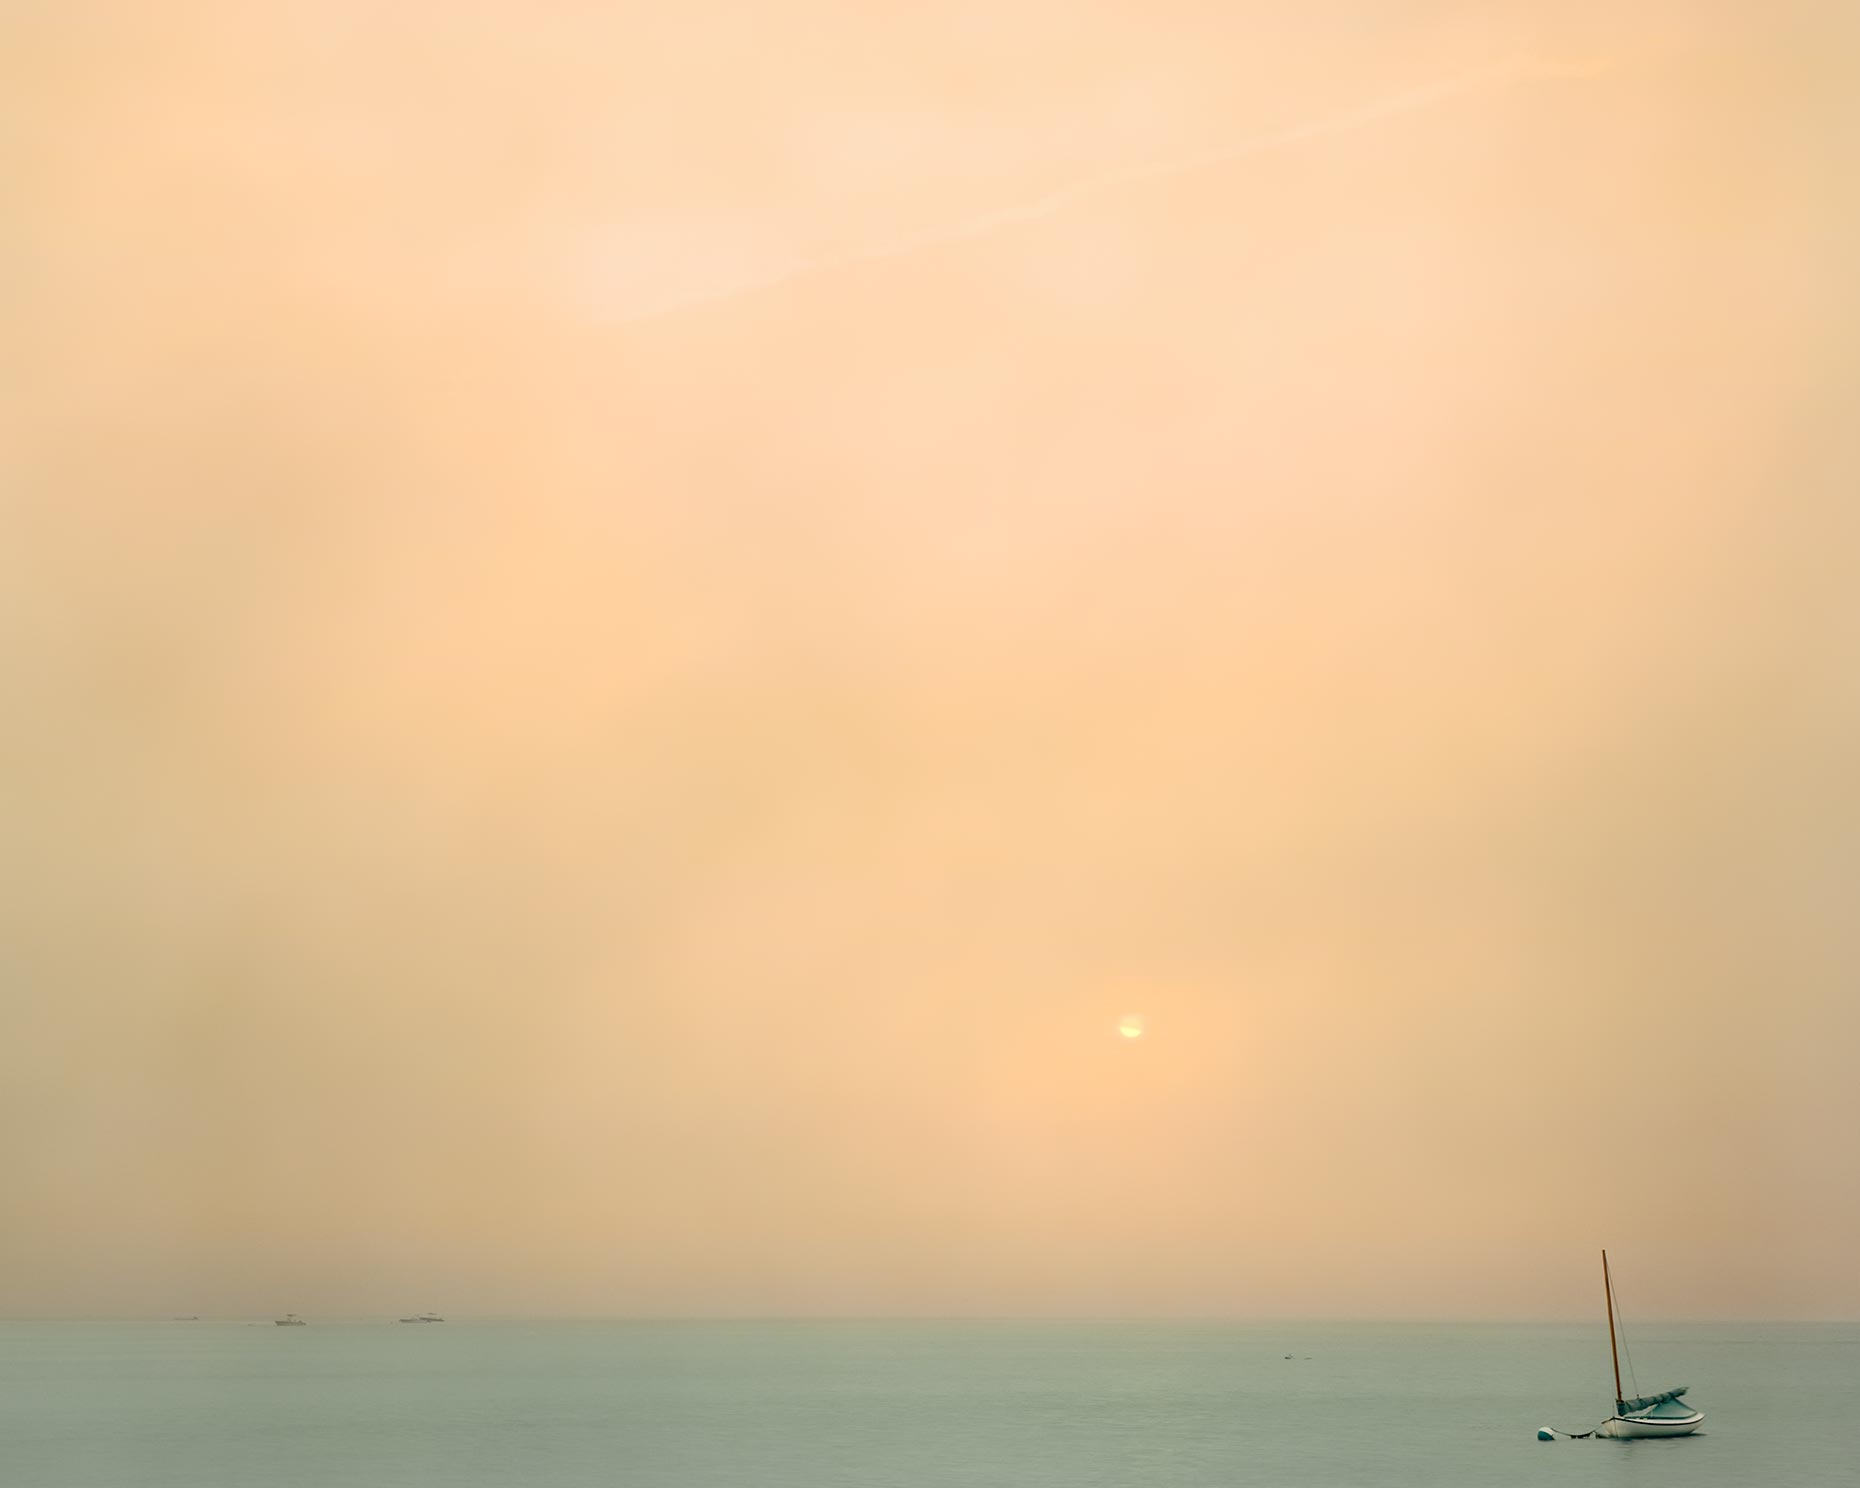 Michael Gaillard  |  Fine Art Photography  |  Foggy Boat